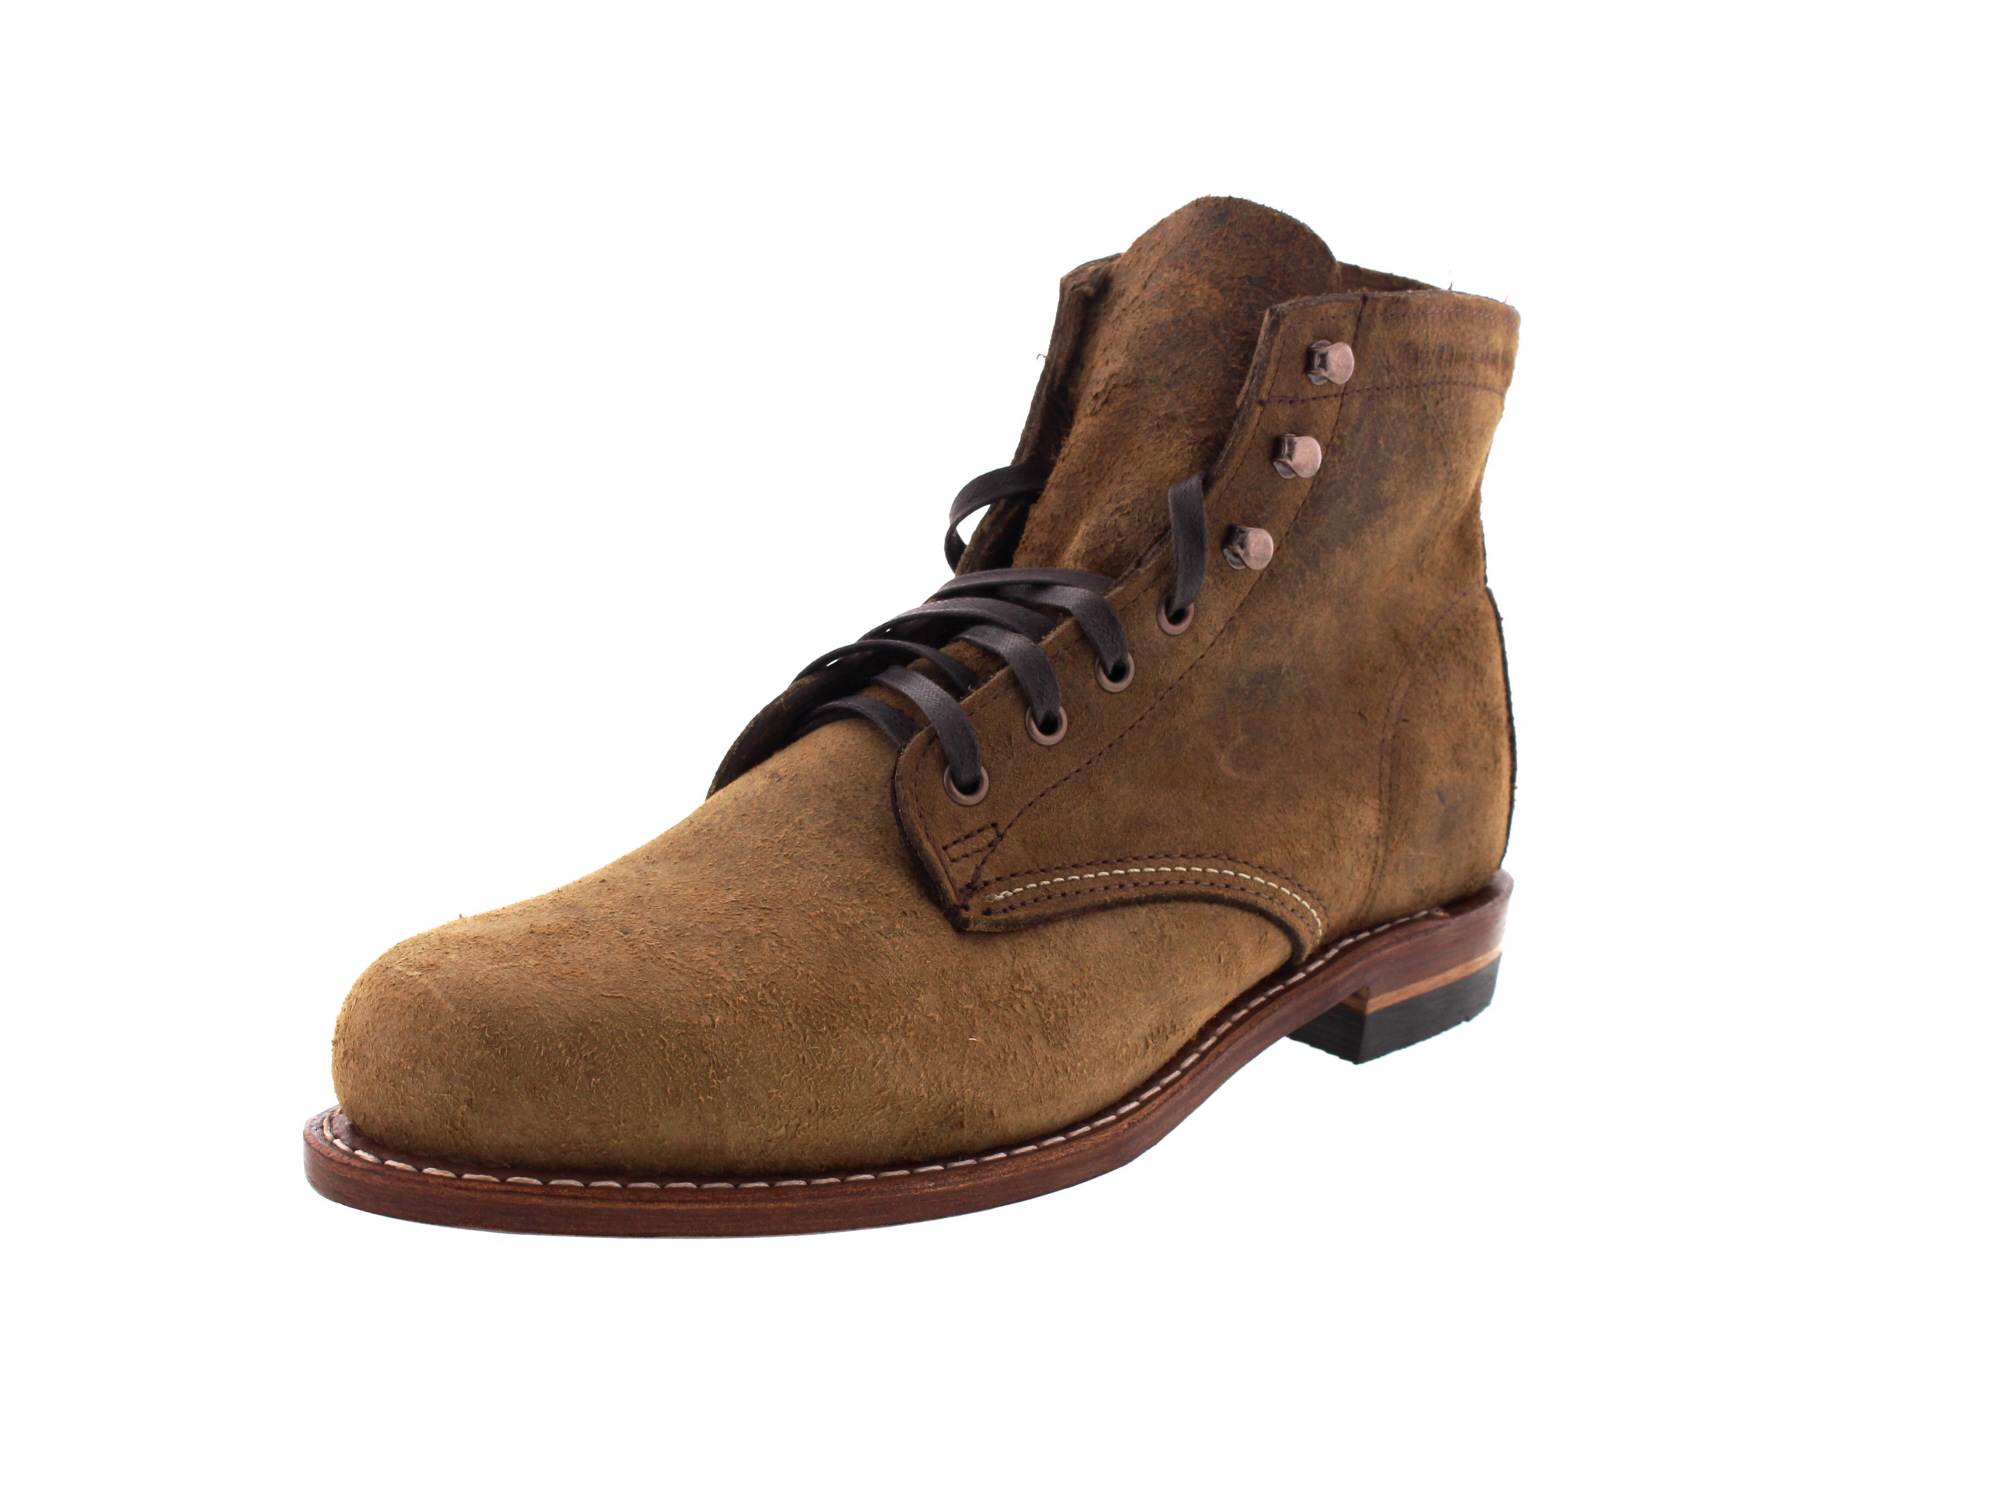 WOLVERINE 1000 Mile Premium-Boots 1000 Mile brown waxy-0